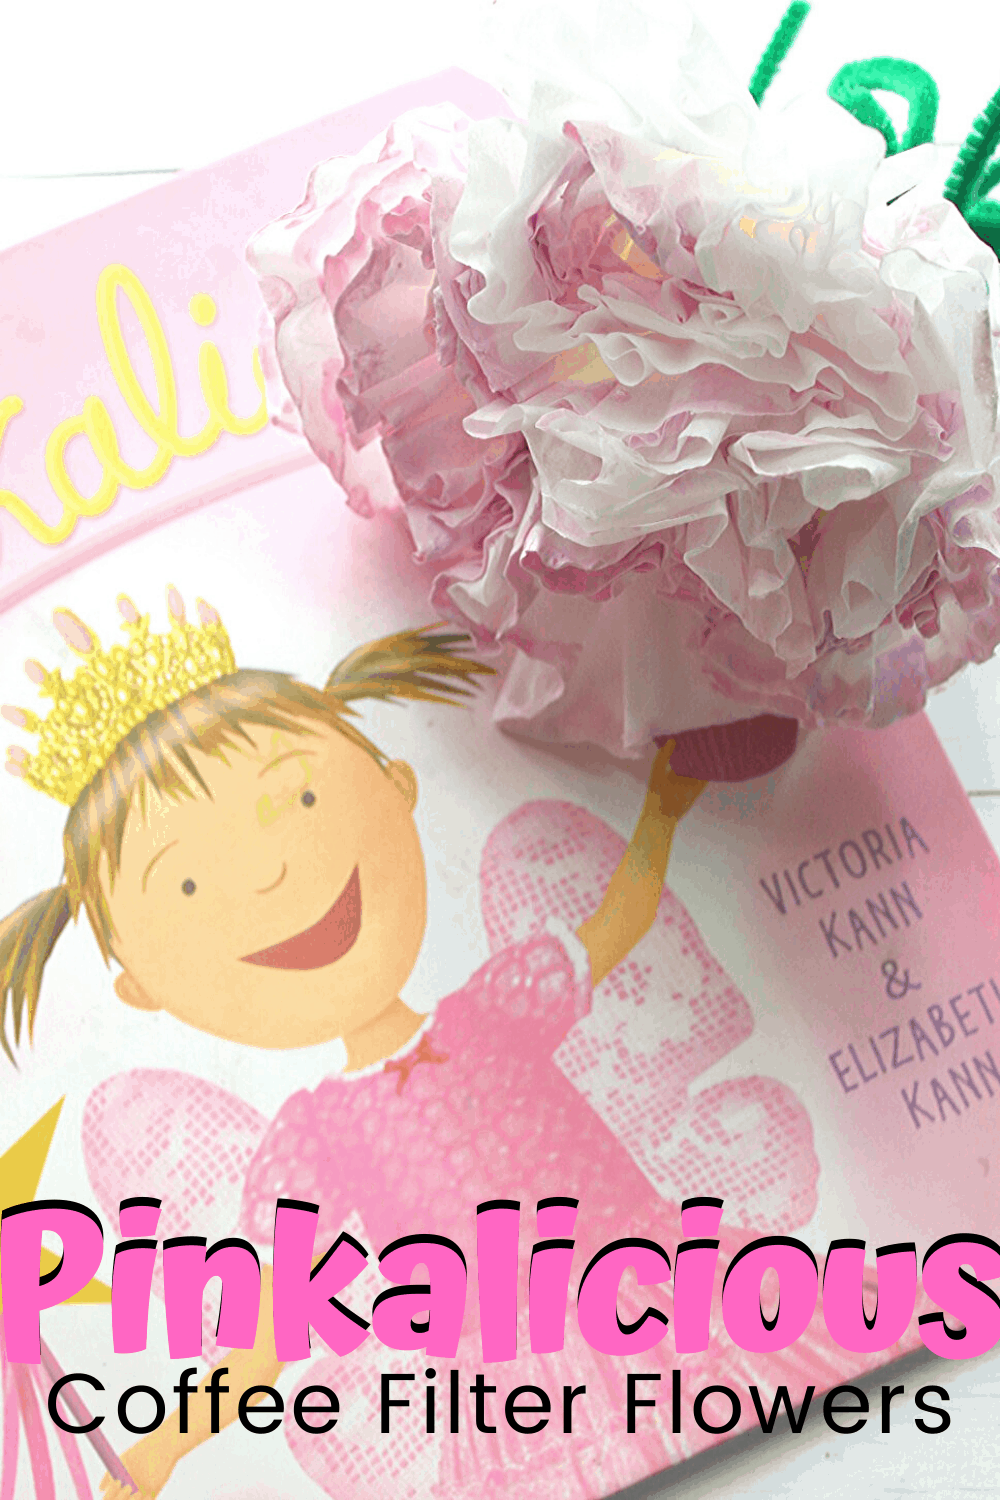 Learn how to make coffee filter flowers with this simple tutorial. It's the perfect craft to make alongside a reading of Pinkalicious.